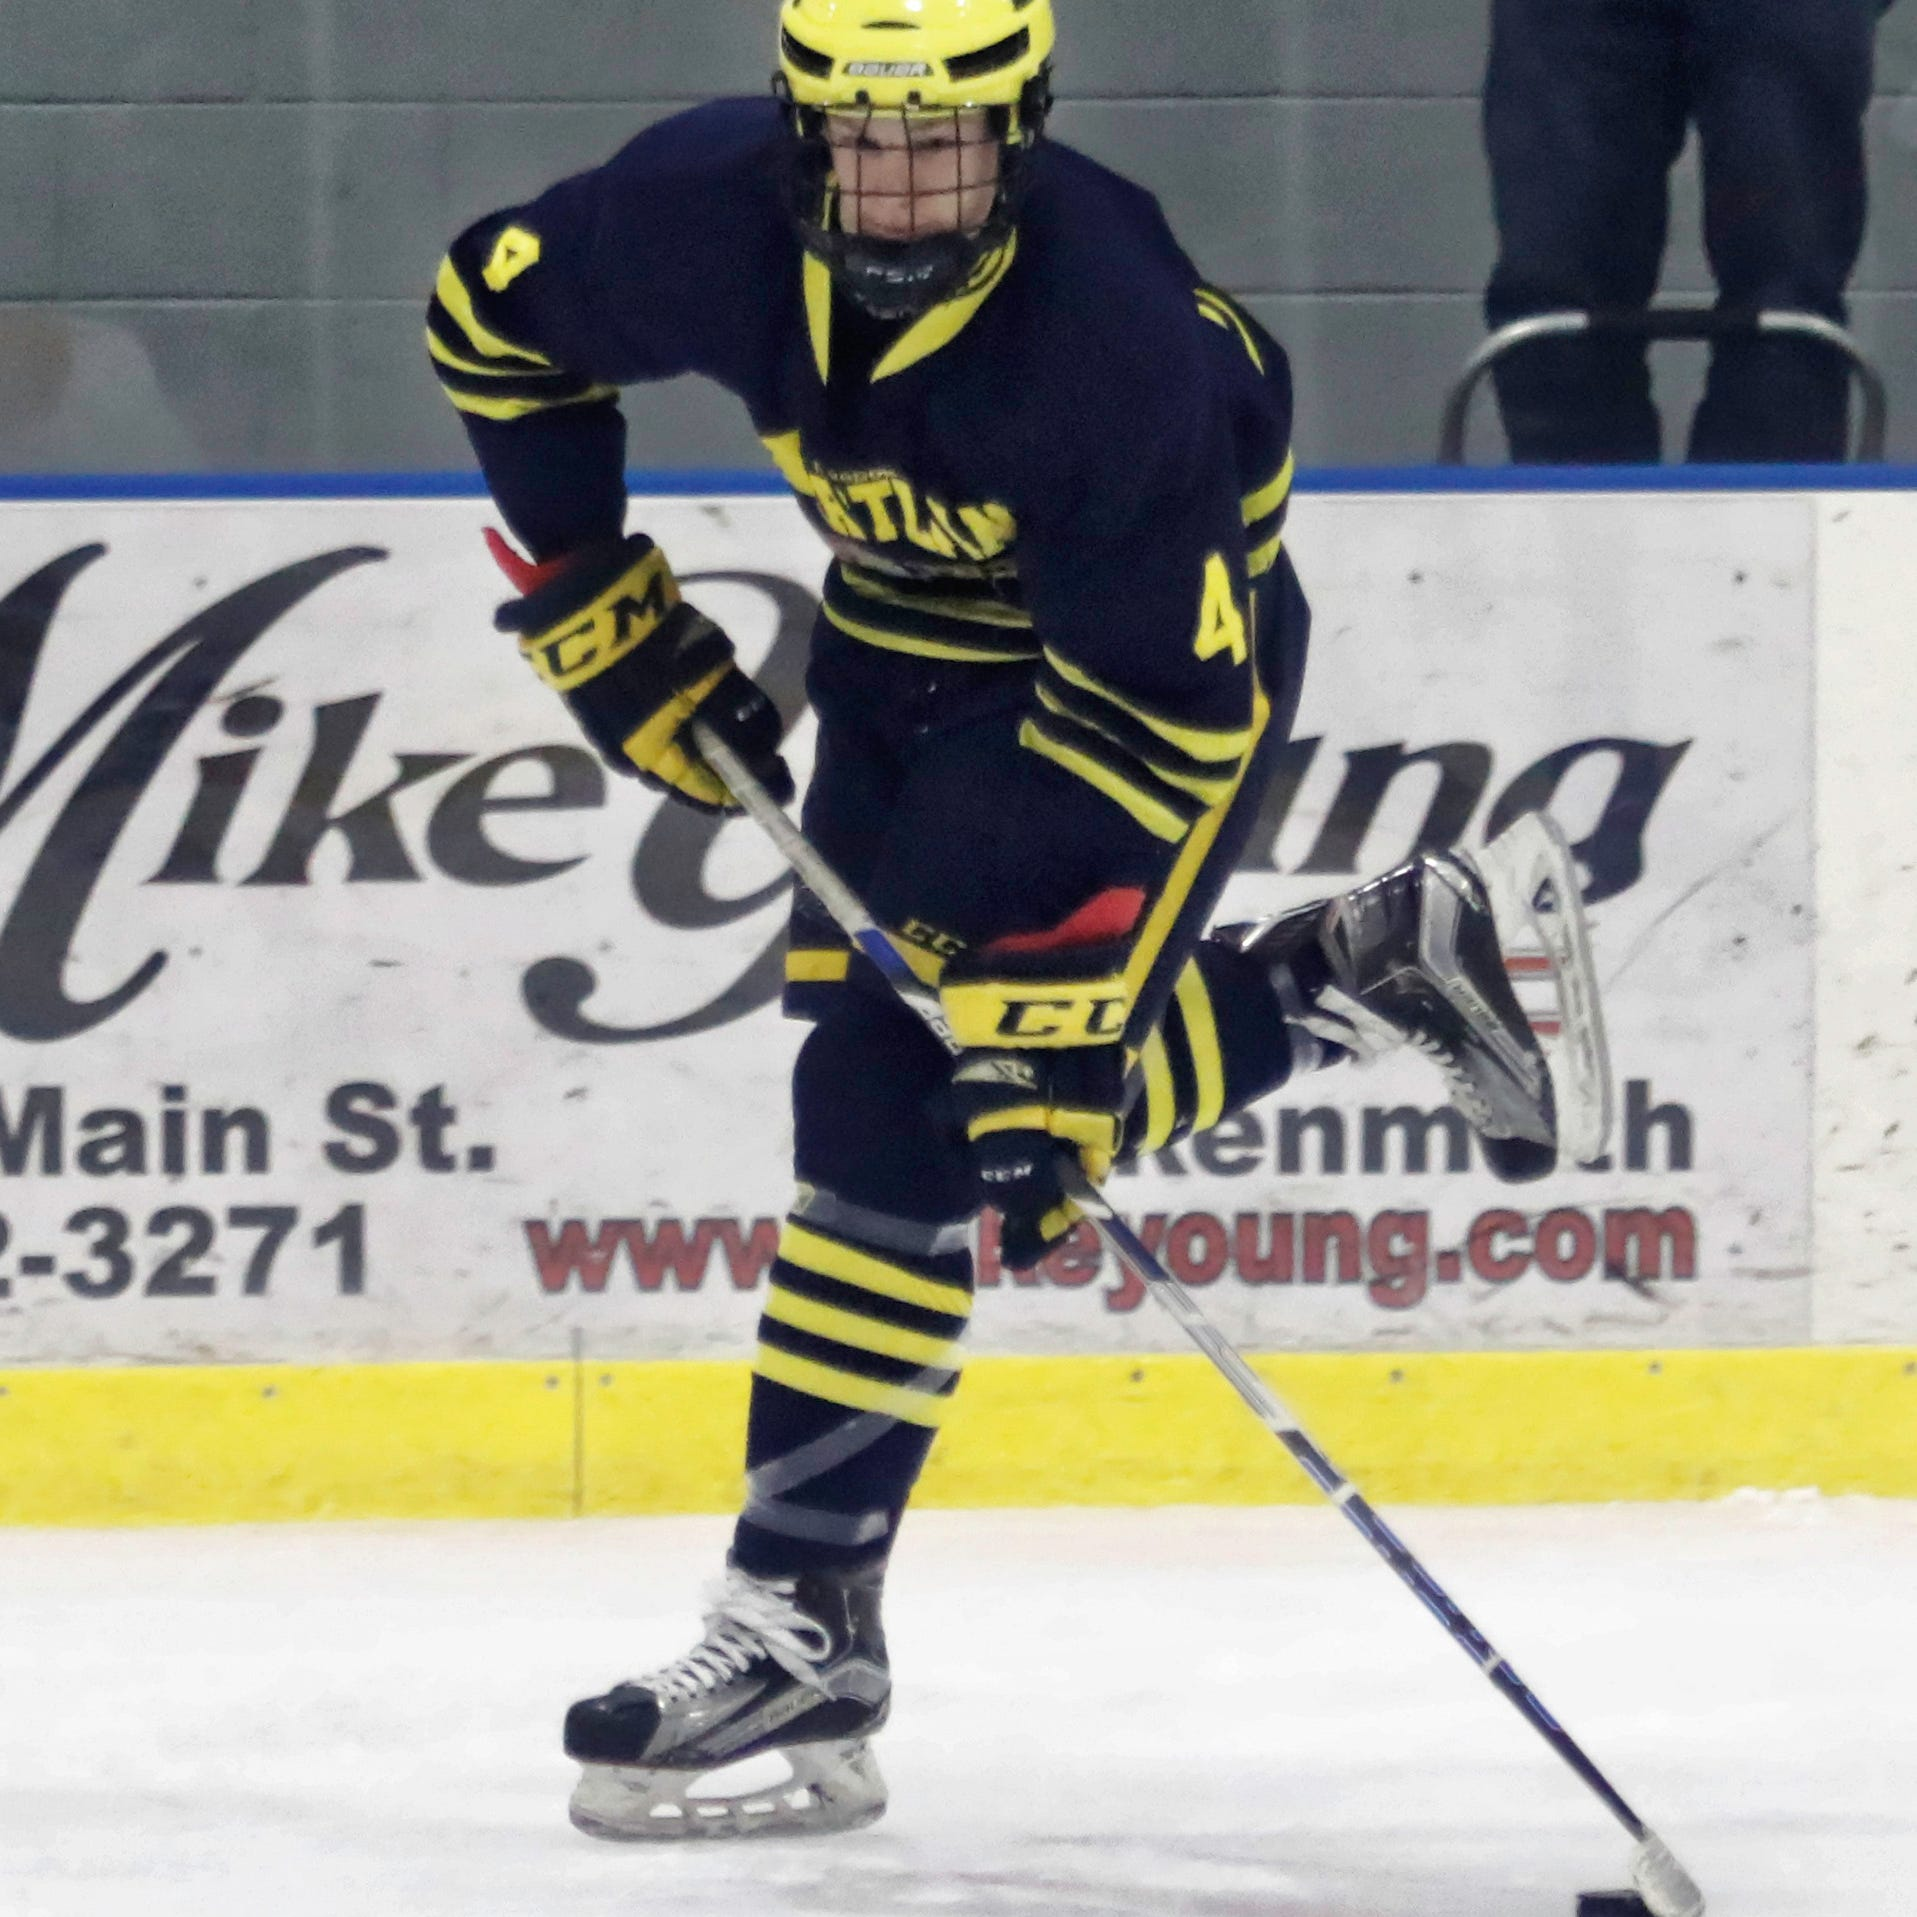 Unlikely scorers jump-start Hartland's hockey season